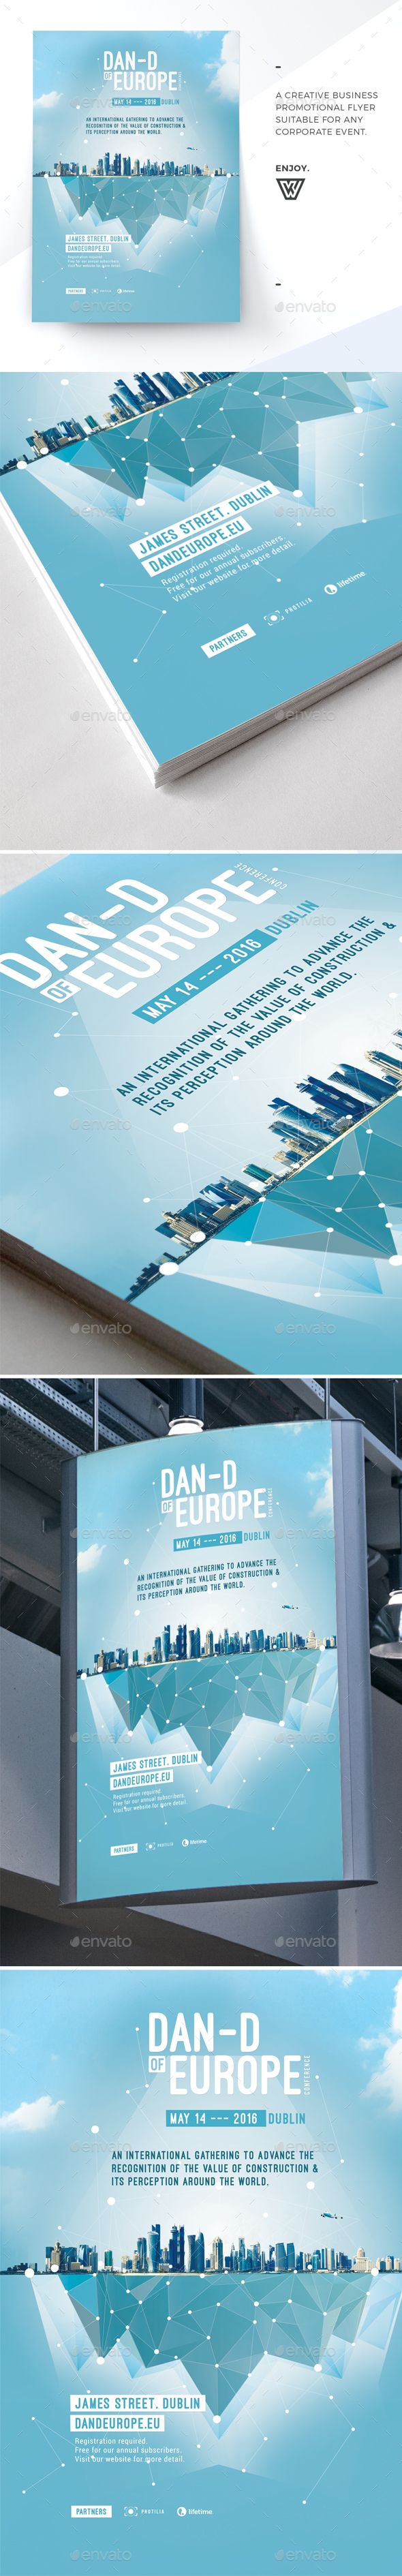 Business Conference Event Flyer Template PSD. Download here: http://graphicriver.net/item/business-conference-event-flyer-/16766244?ref=ksioks